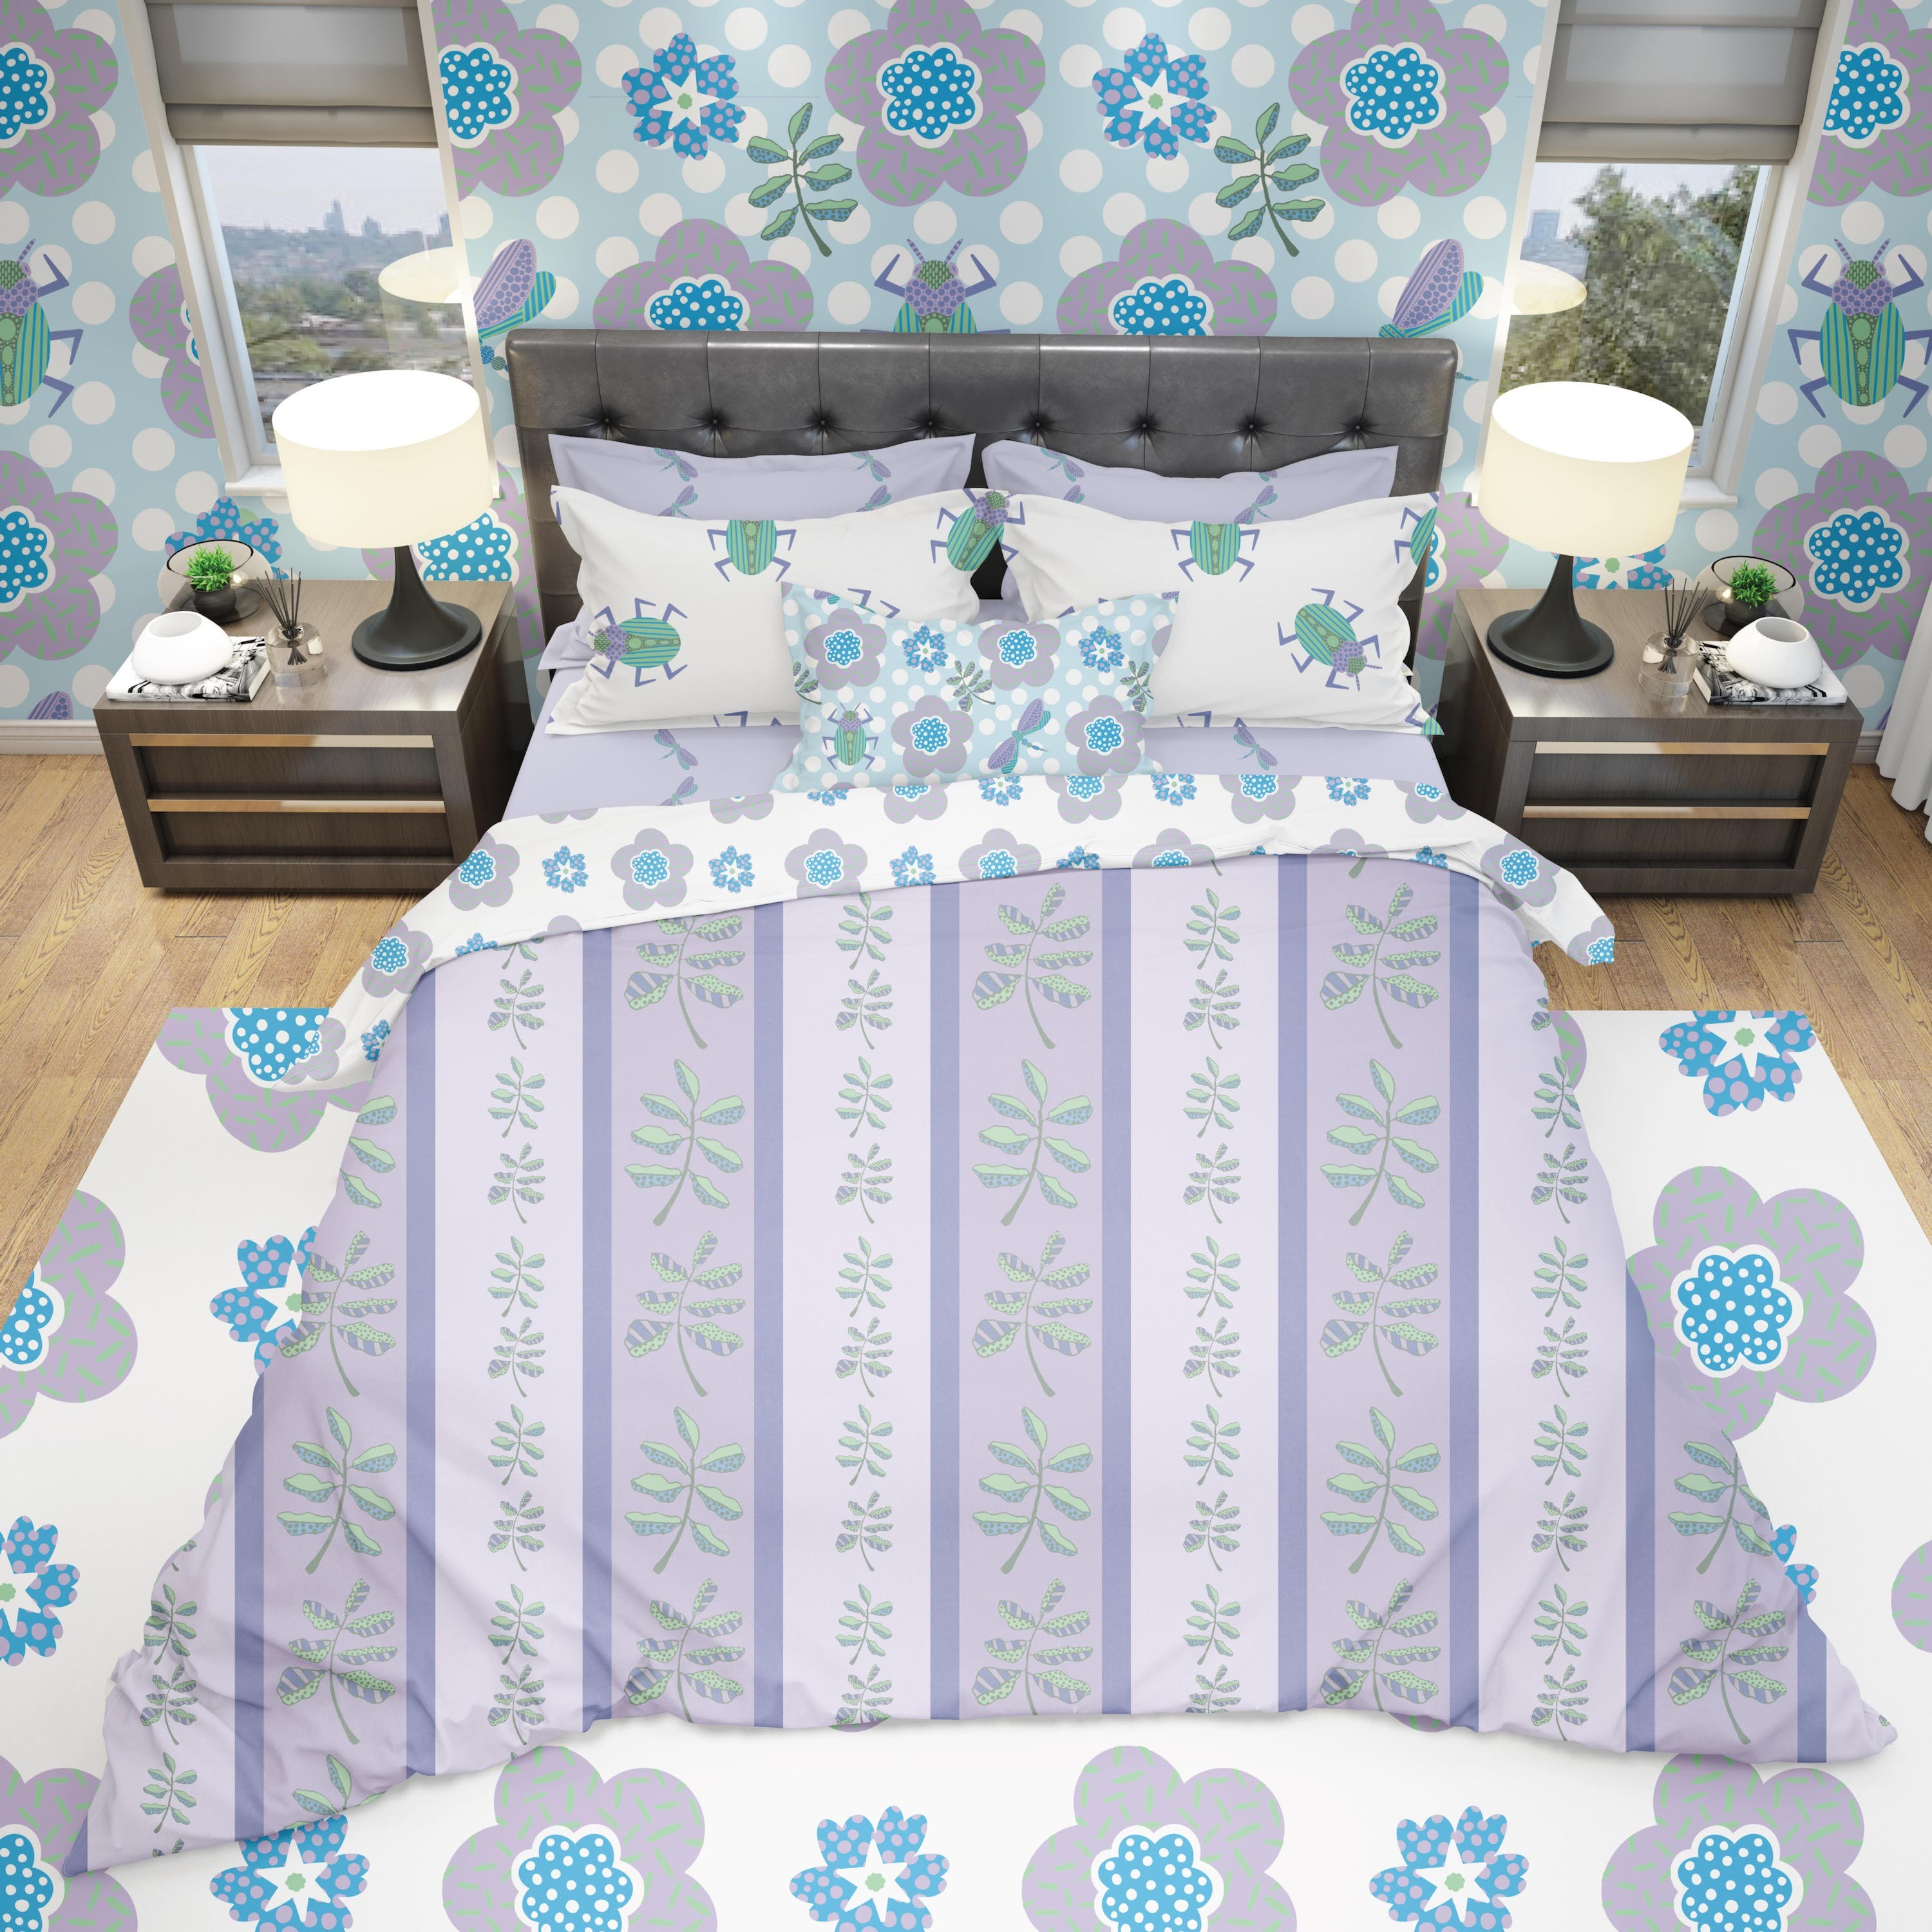 Image of a bed with drawings of insects and plants in a light color pallet of blue, green and purple. The top pillow has images of green beetles and the pillowcase below it has the same pattern as the bottom sheet which is of purple dragonflies.  A small